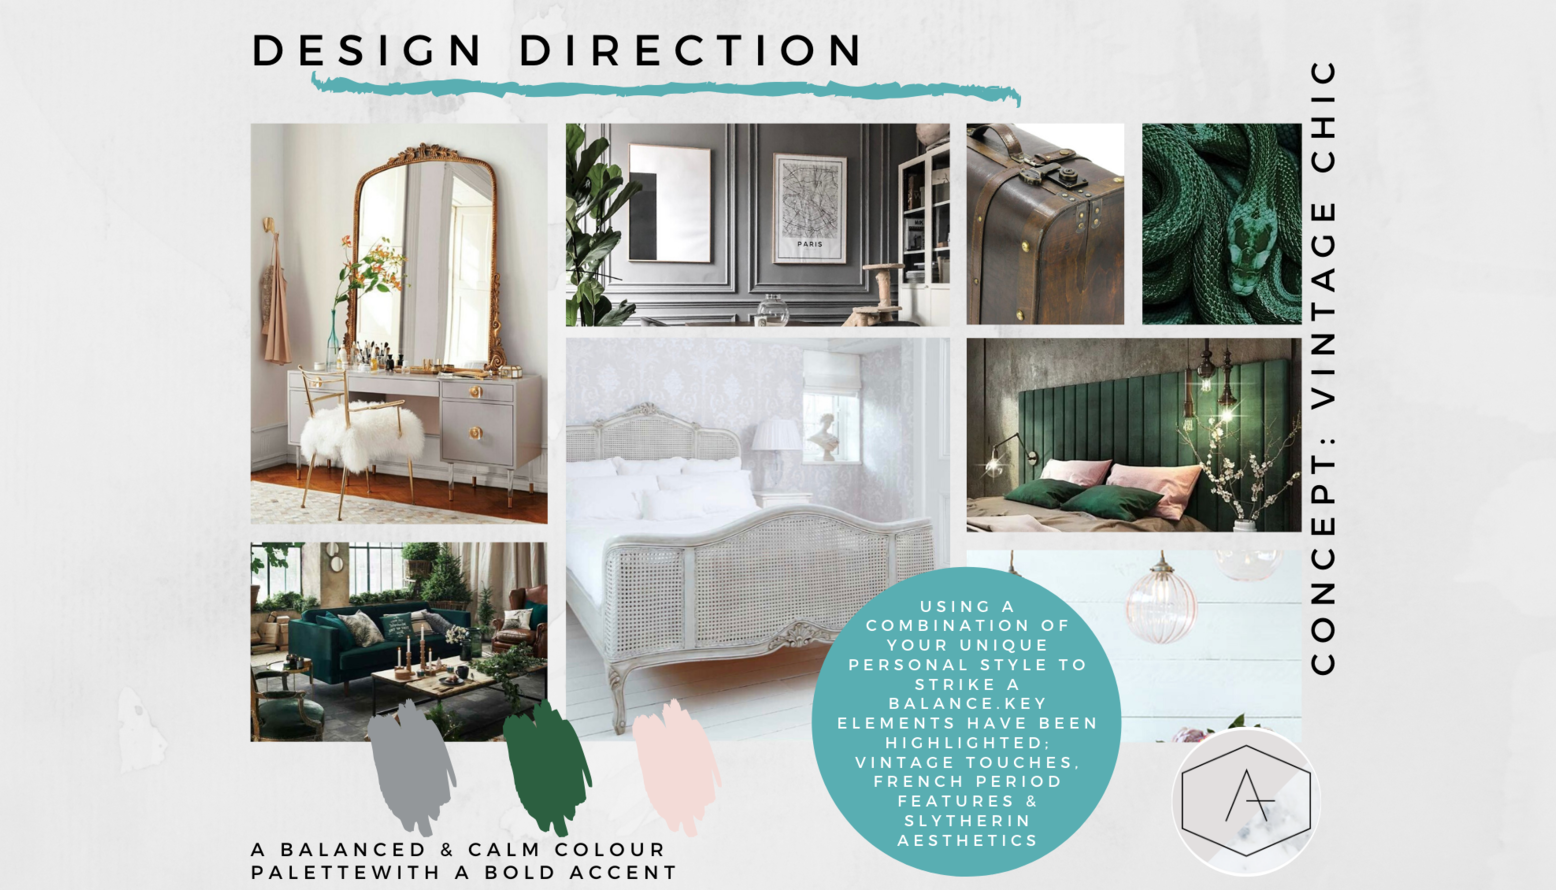 Amy pearce image design direction